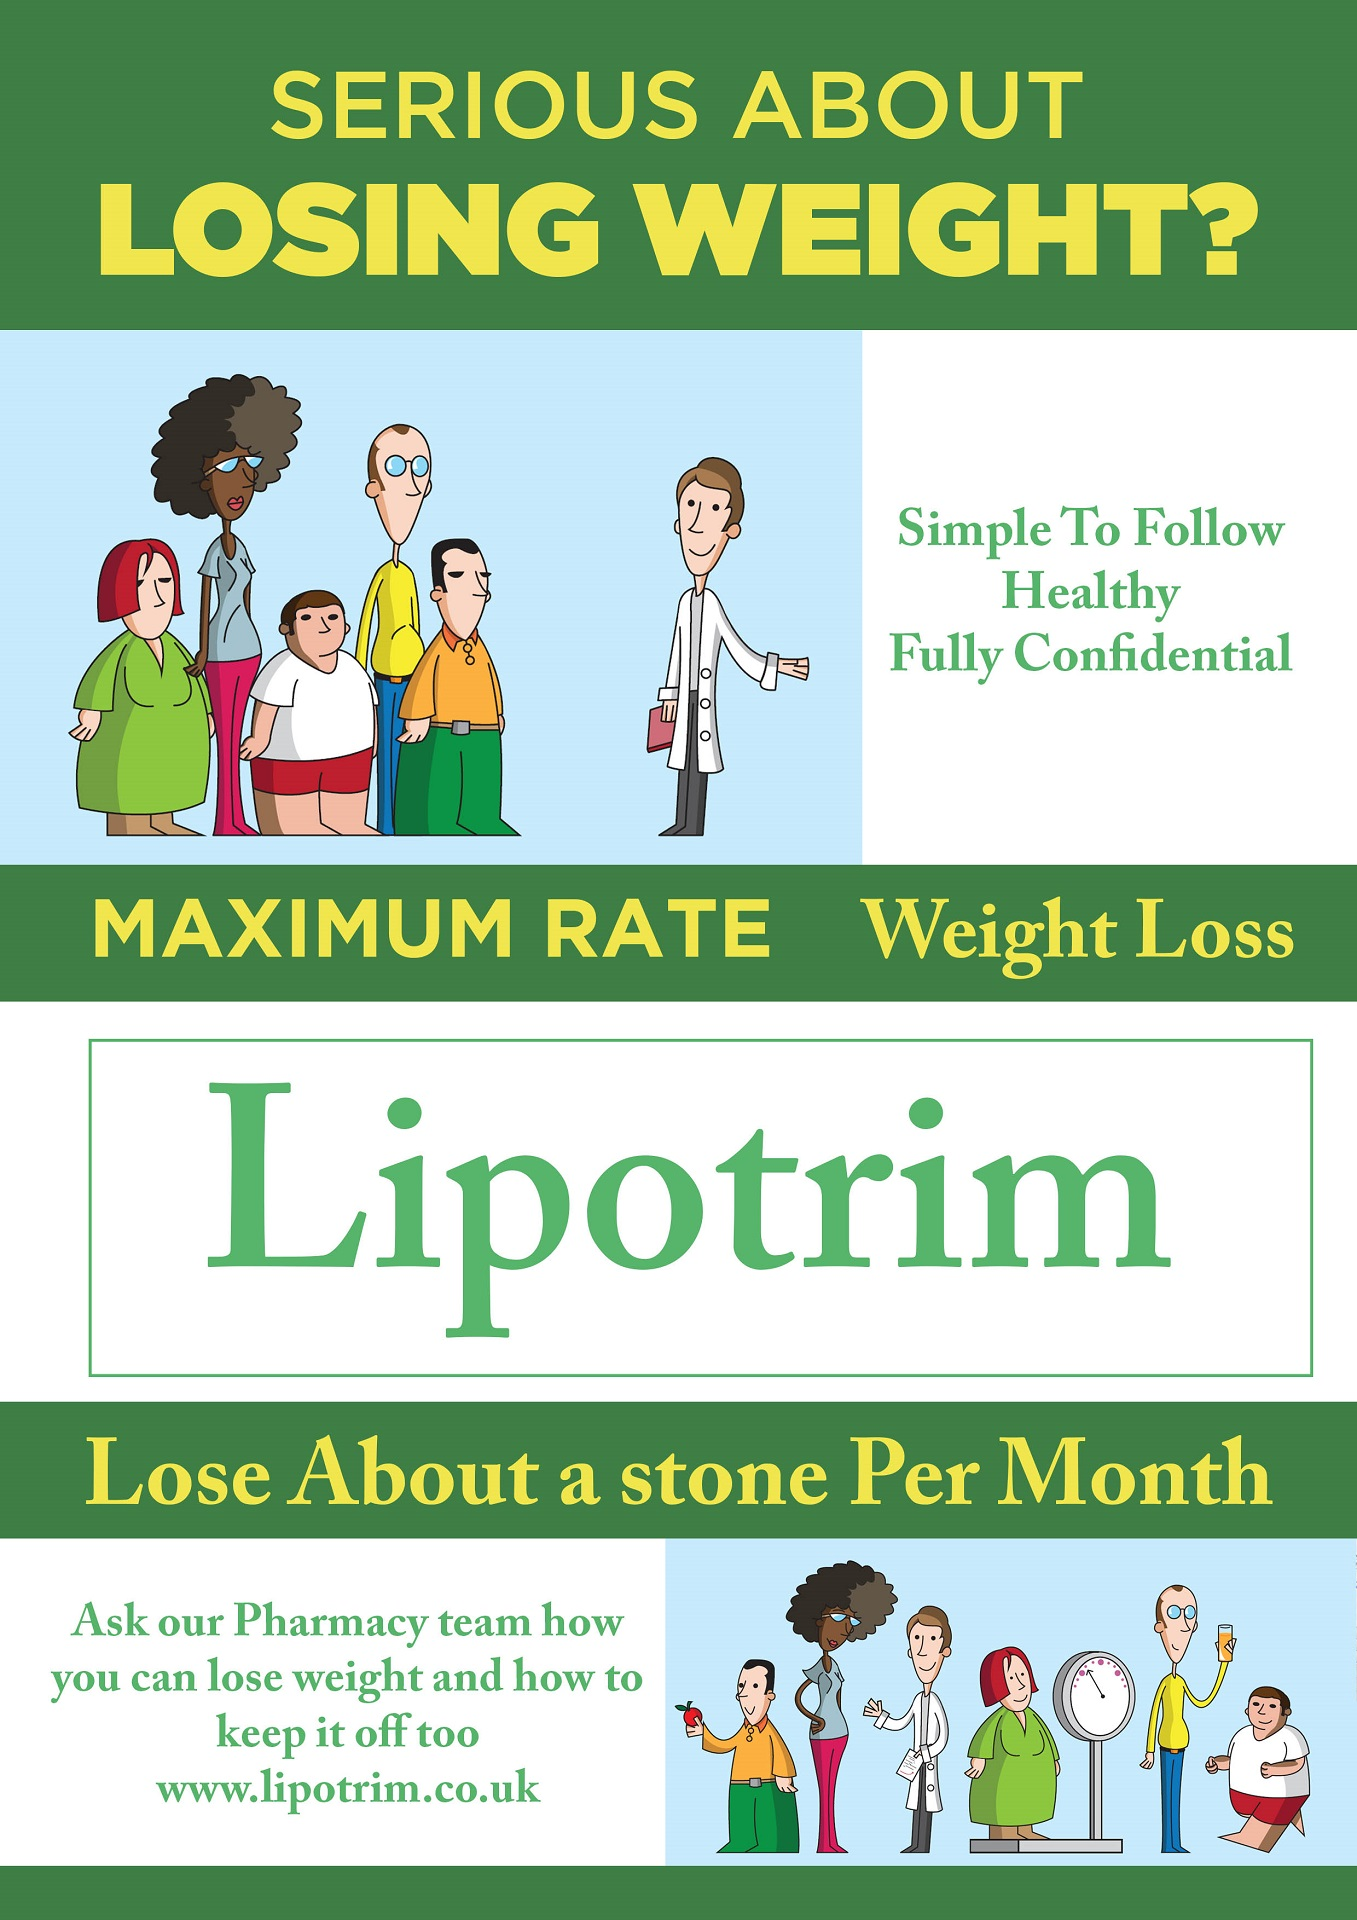 A lipotrim poster showing cartoon figures